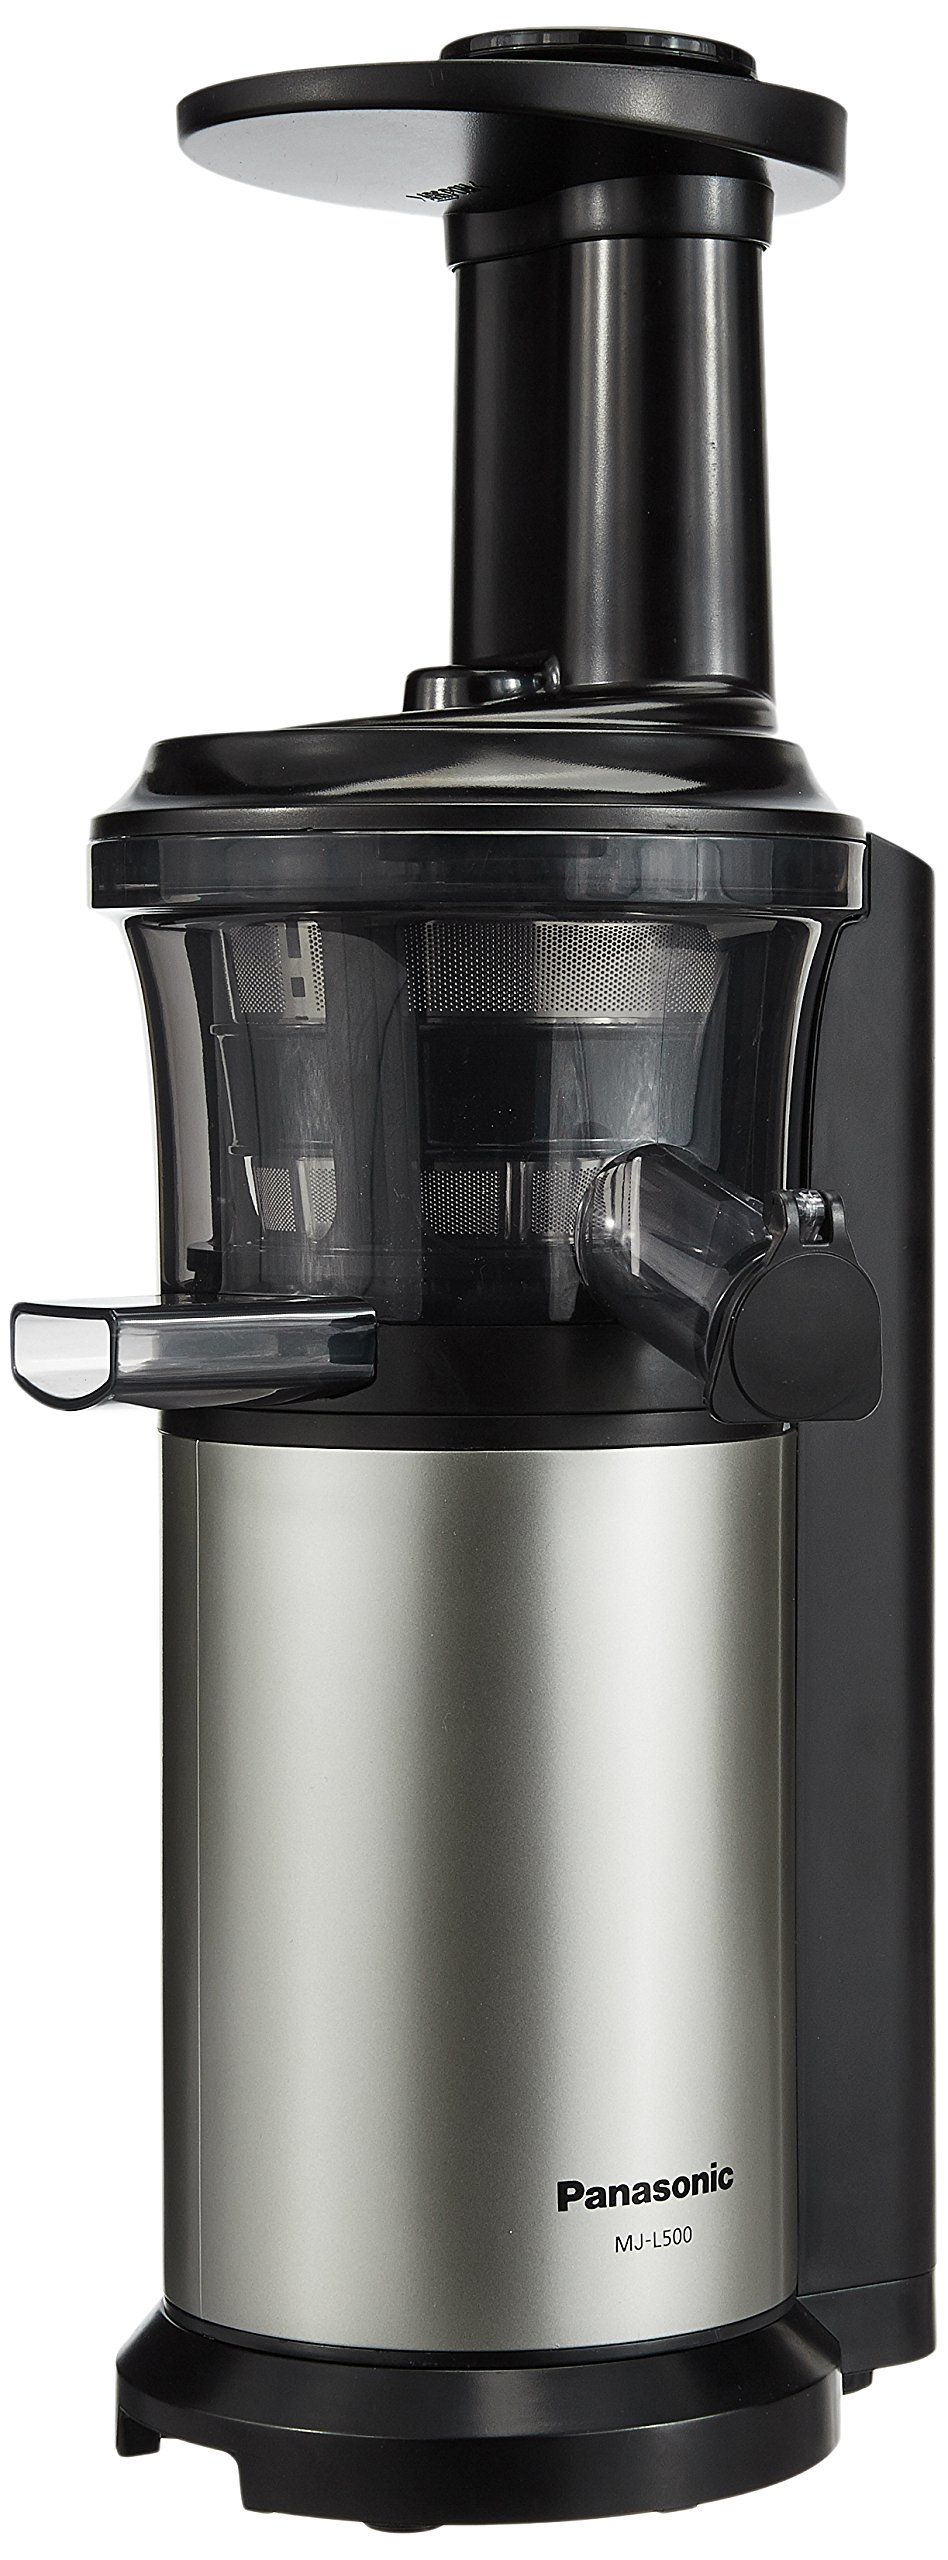 10. Panasonic MJ-L500 Cold Press Slow Juice